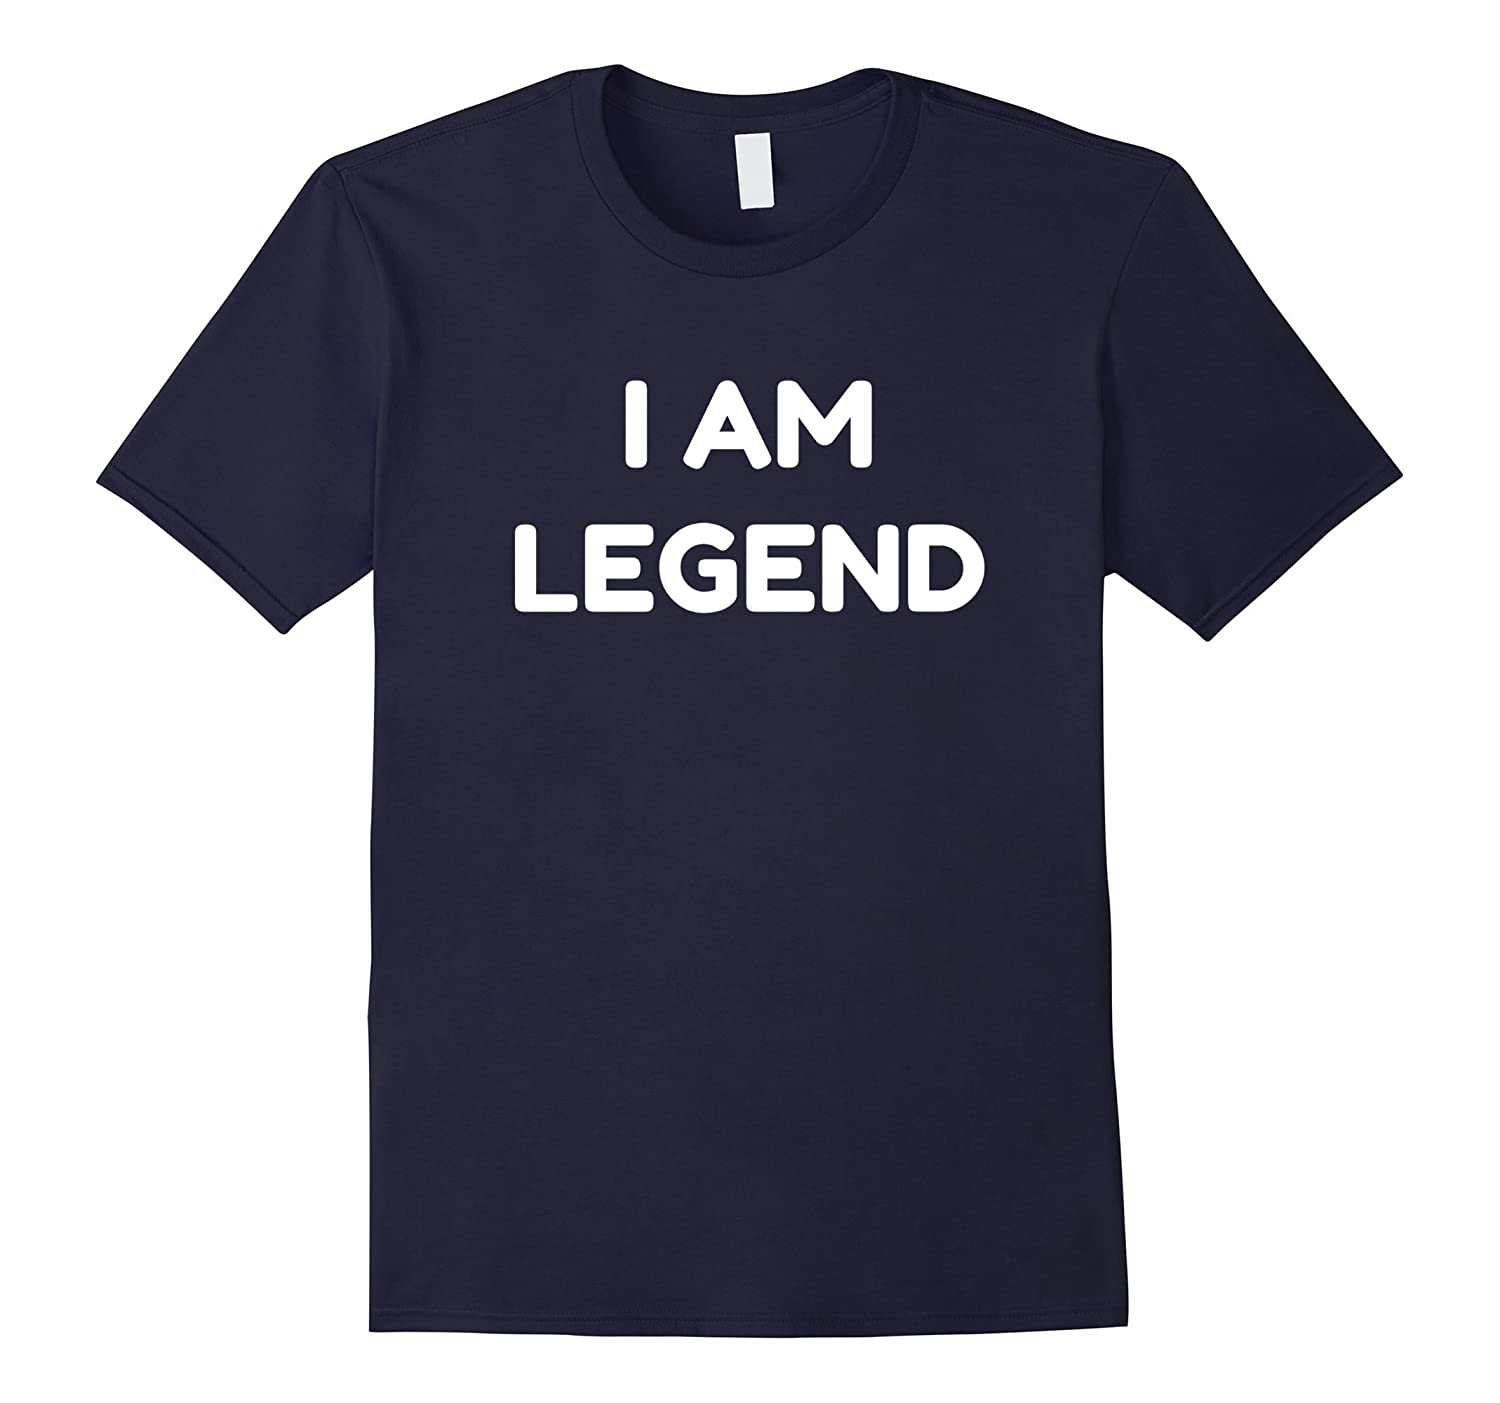 I AM LEGEND T-Shirt orange blacknavy asphalt-Vaci